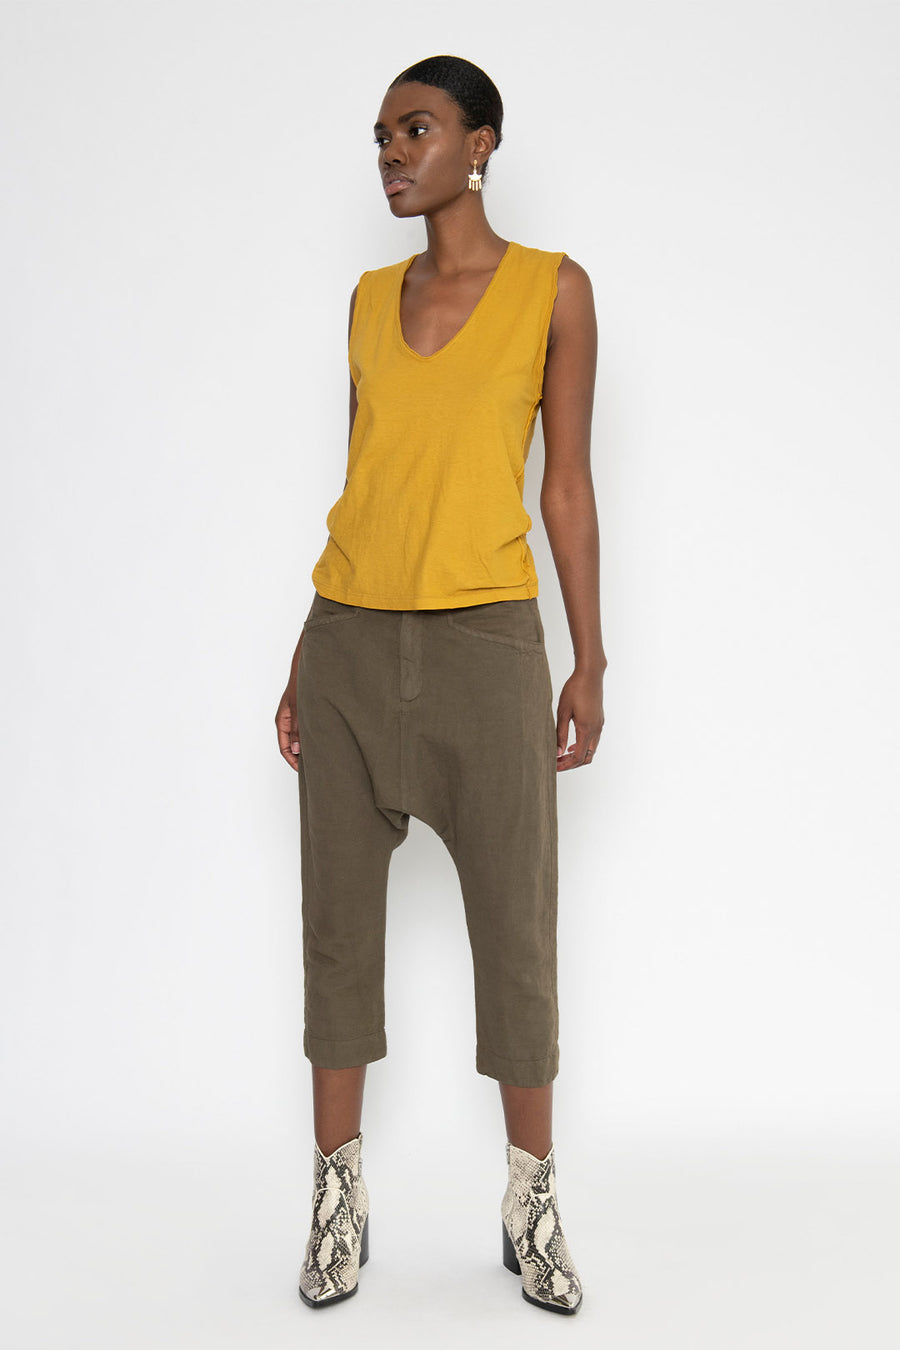 HEARTLAND DROP CROTCH CROP PANT, ARMY